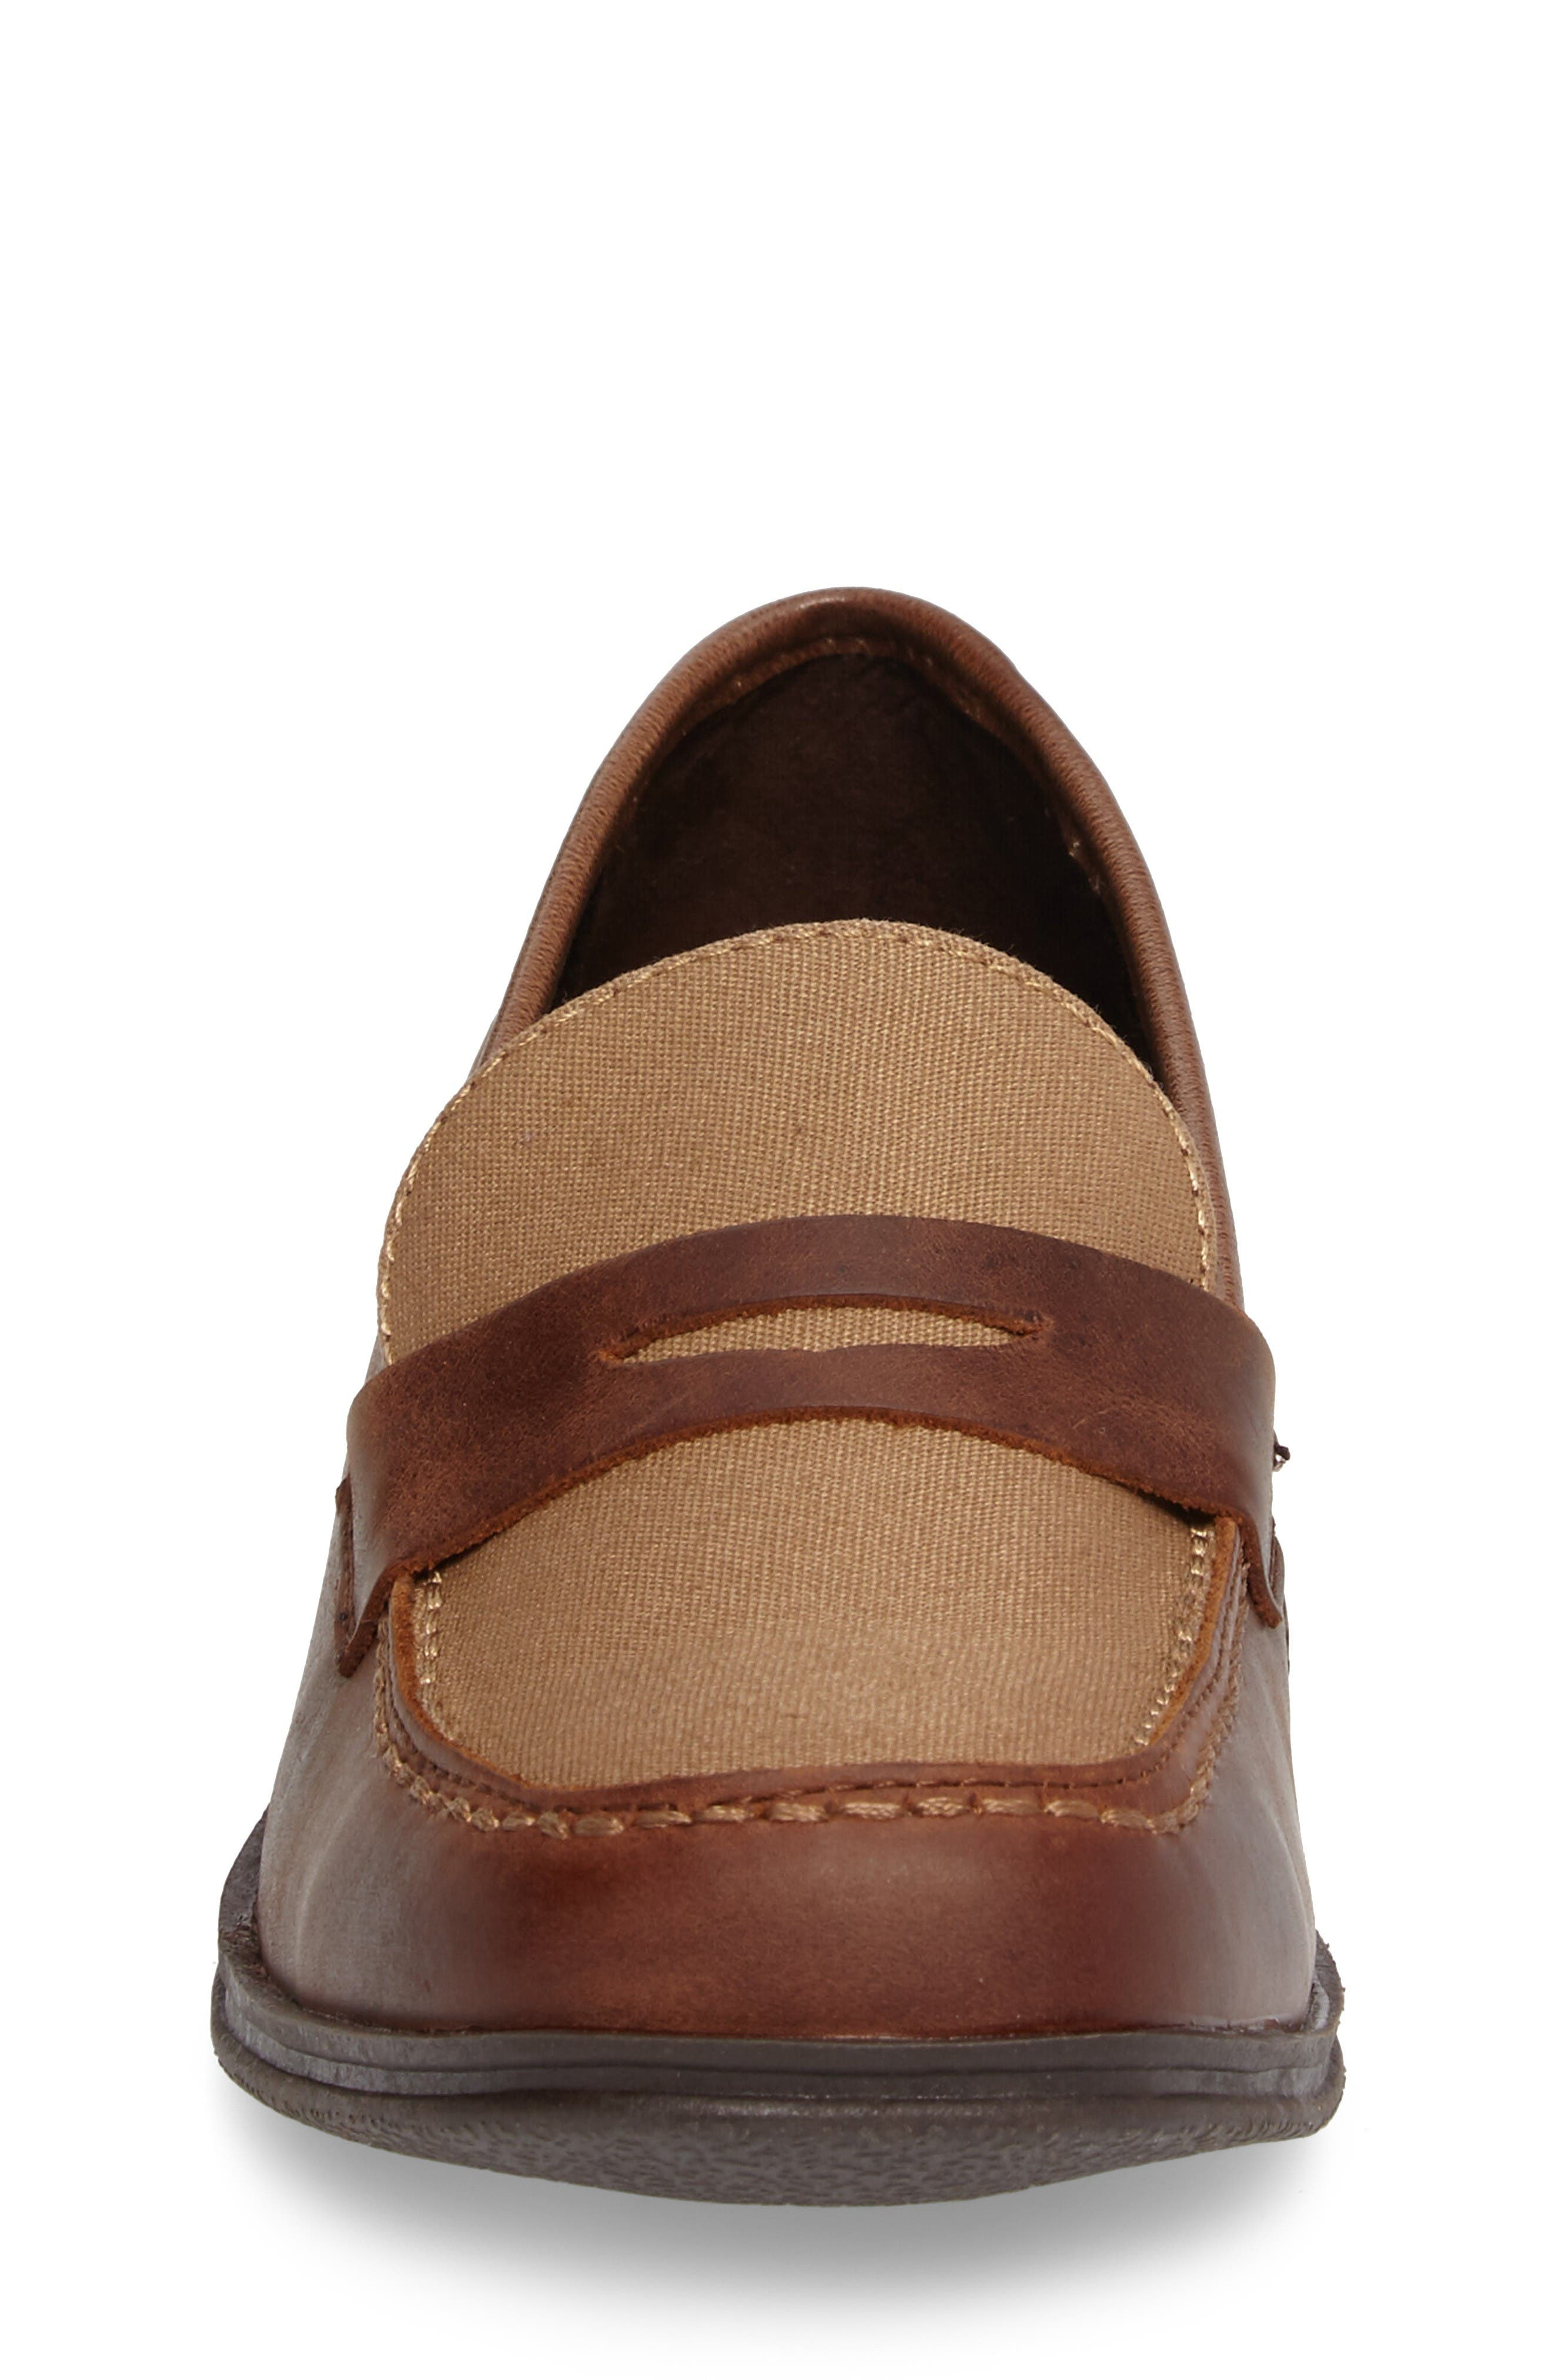 Club Loft Loafer,                             Alternate thumbnail 4, color,                             Tan/ Brown Leather